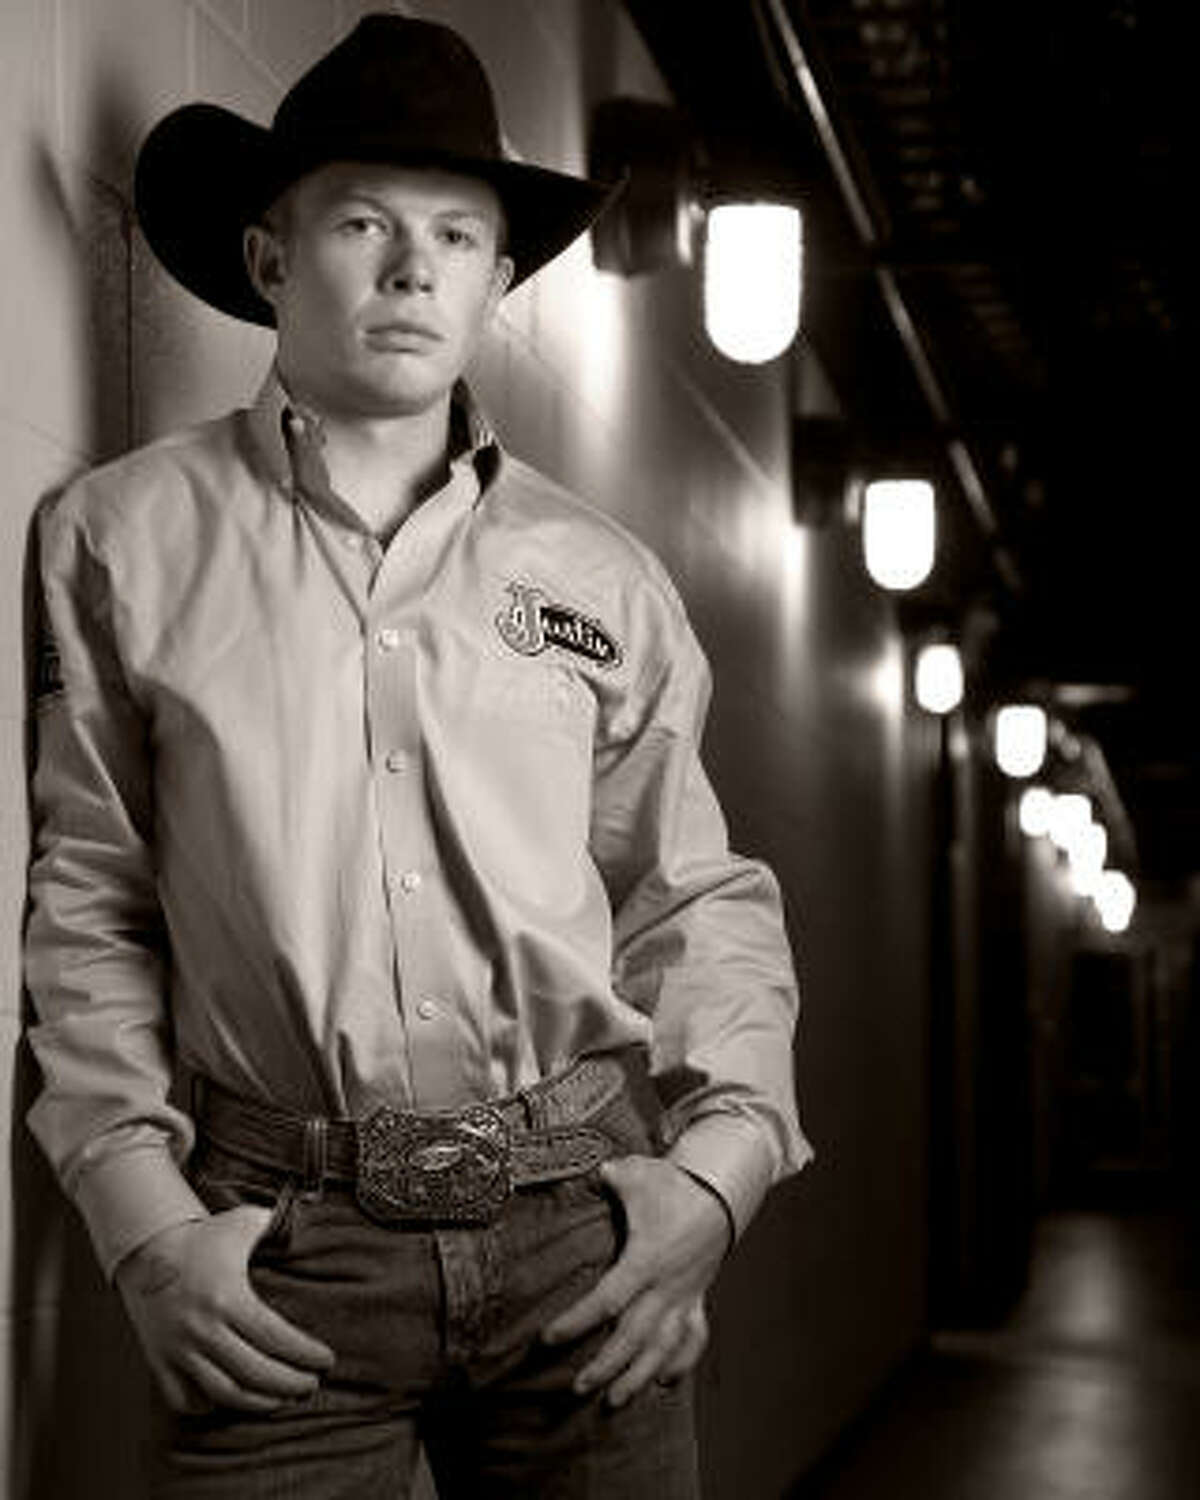 Steve Woolsey, a bull rider from Payson